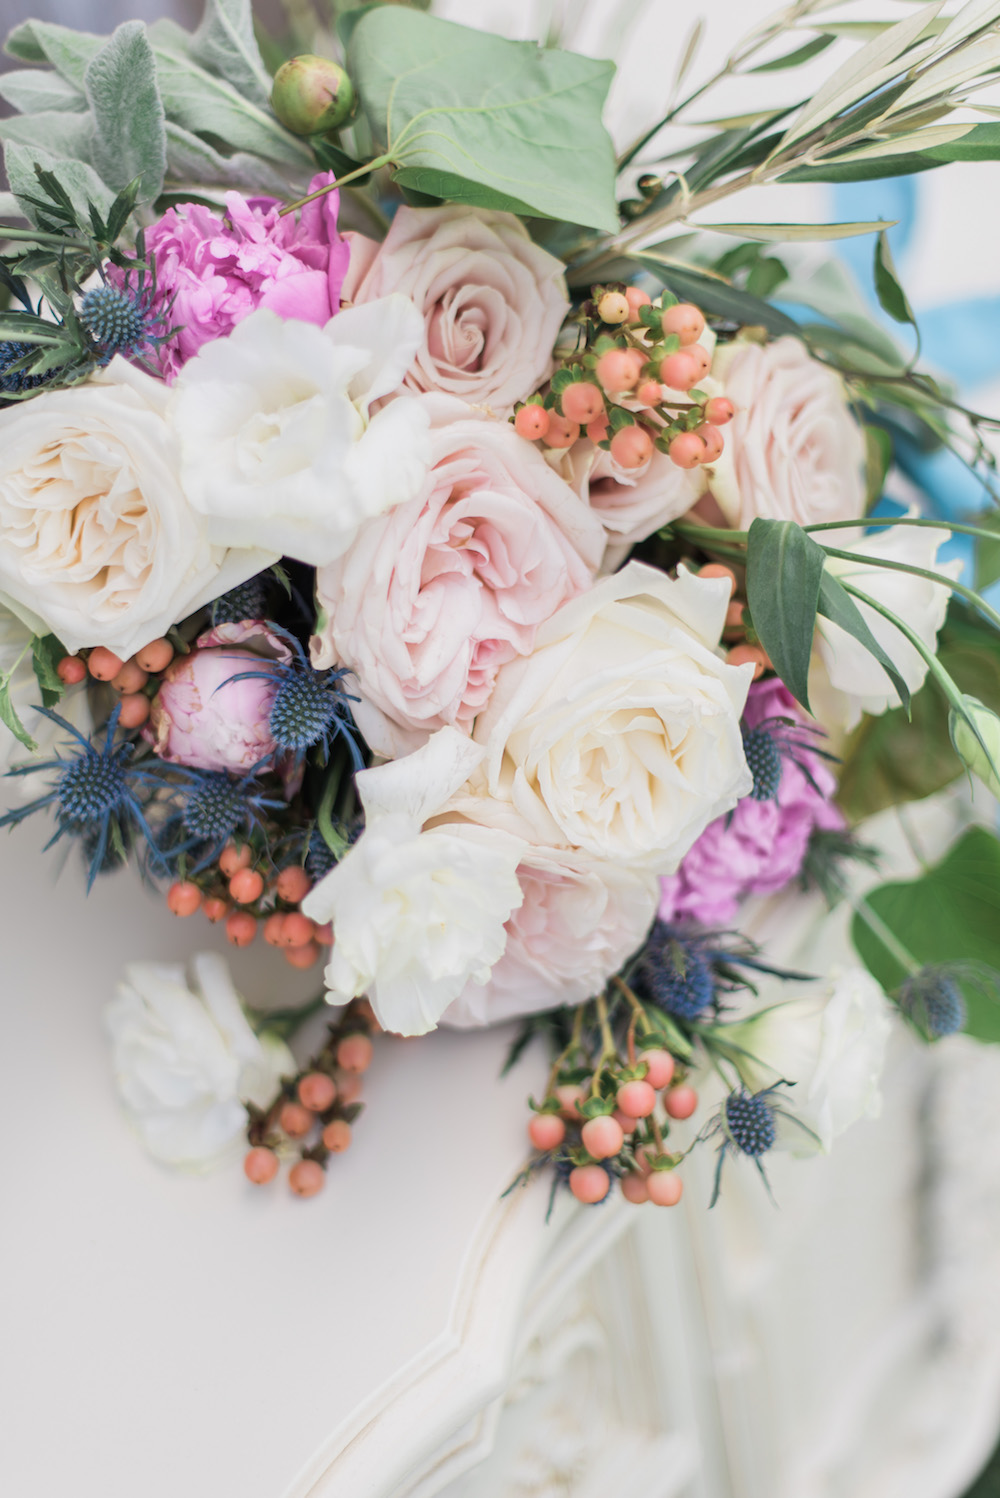 Ira and Lucy Wedding Coordination and Design | Boise Wedding Planner | Stephanie Mballo Photography